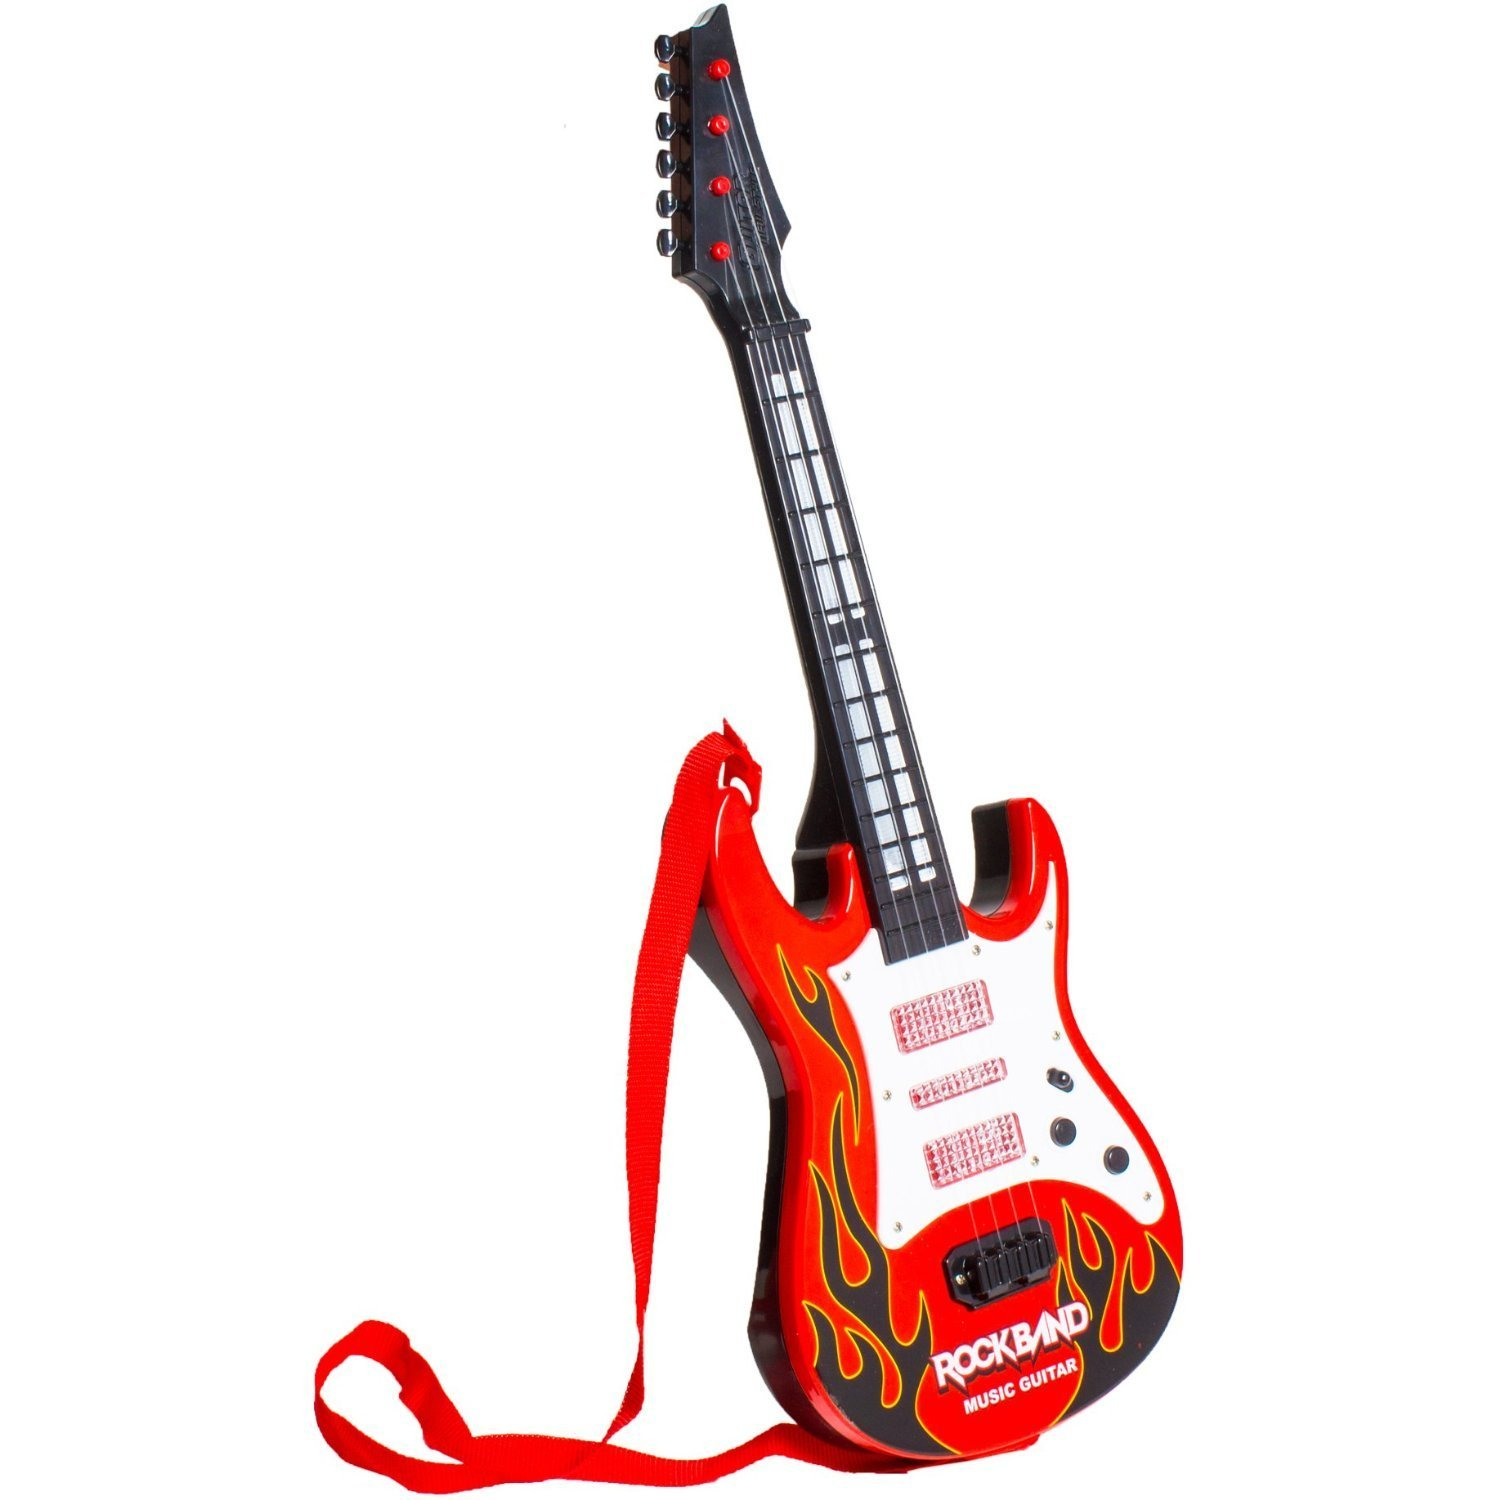 Buy Tickles Red RockBand Musical Instrument Guitar toy For Kids